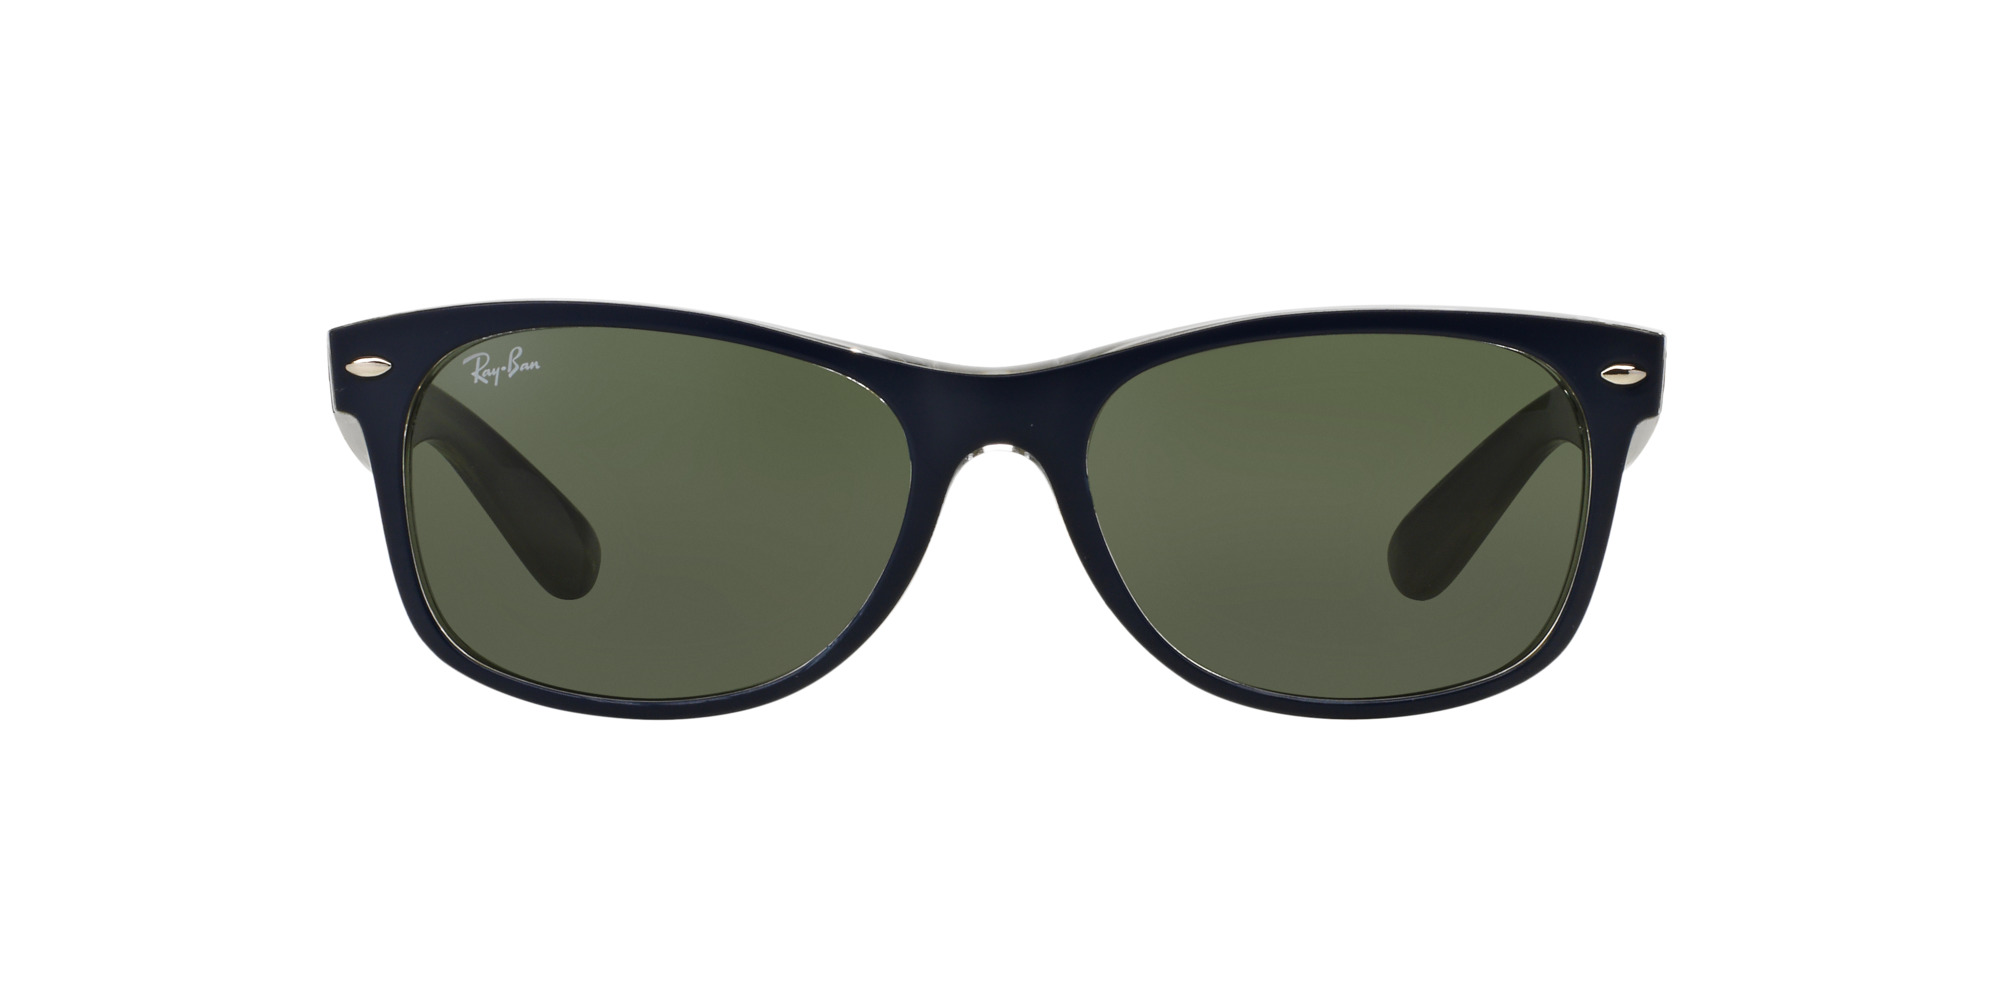 RAY-BAN NEW WAYFARER RB 2132 6188-360